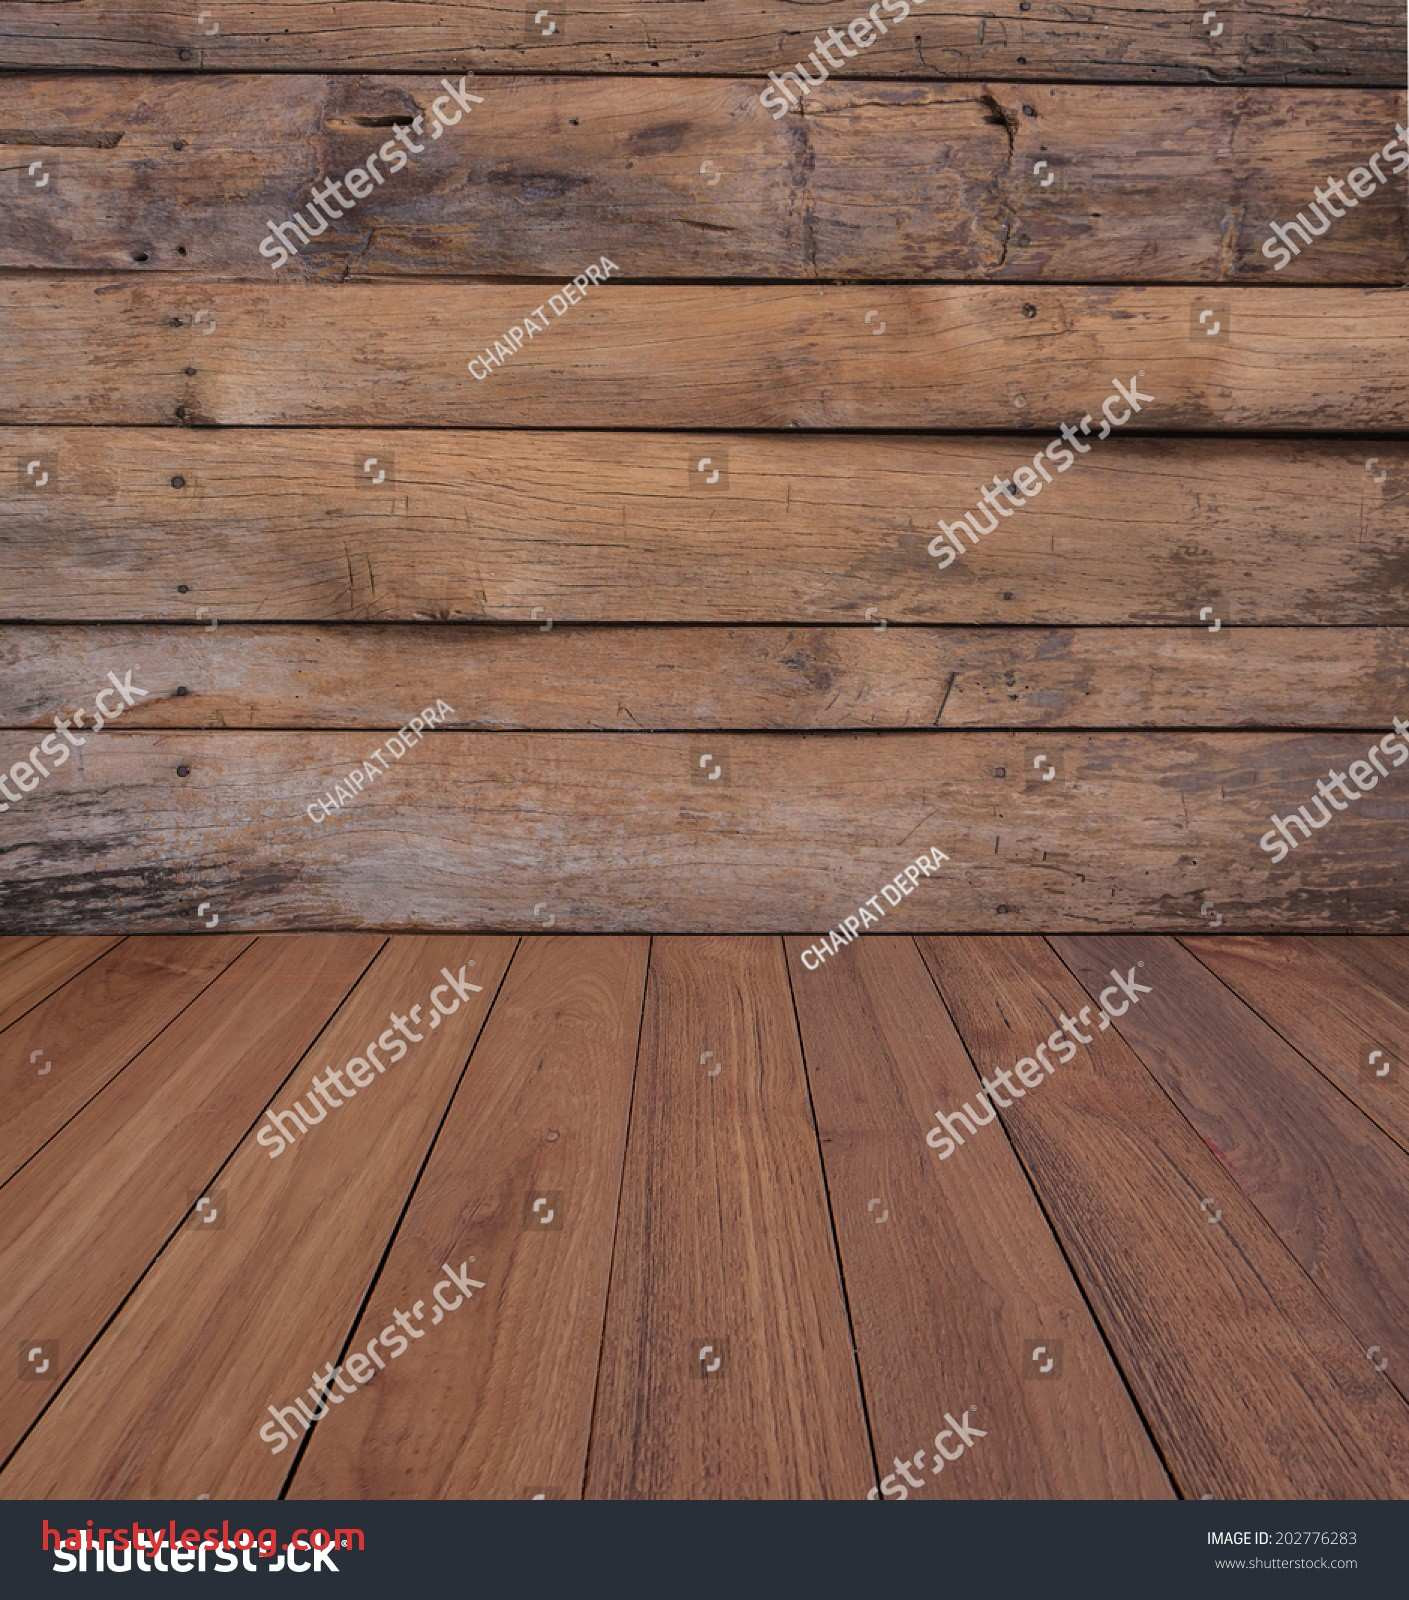 good quality hardwood flooring of modern contemporary hardwood floor 3d texture for home prepare od pertaining to modern contemporary hardwood floor 3d texture for home prepare od wood wall wood floor stock photo royalty free 202776283